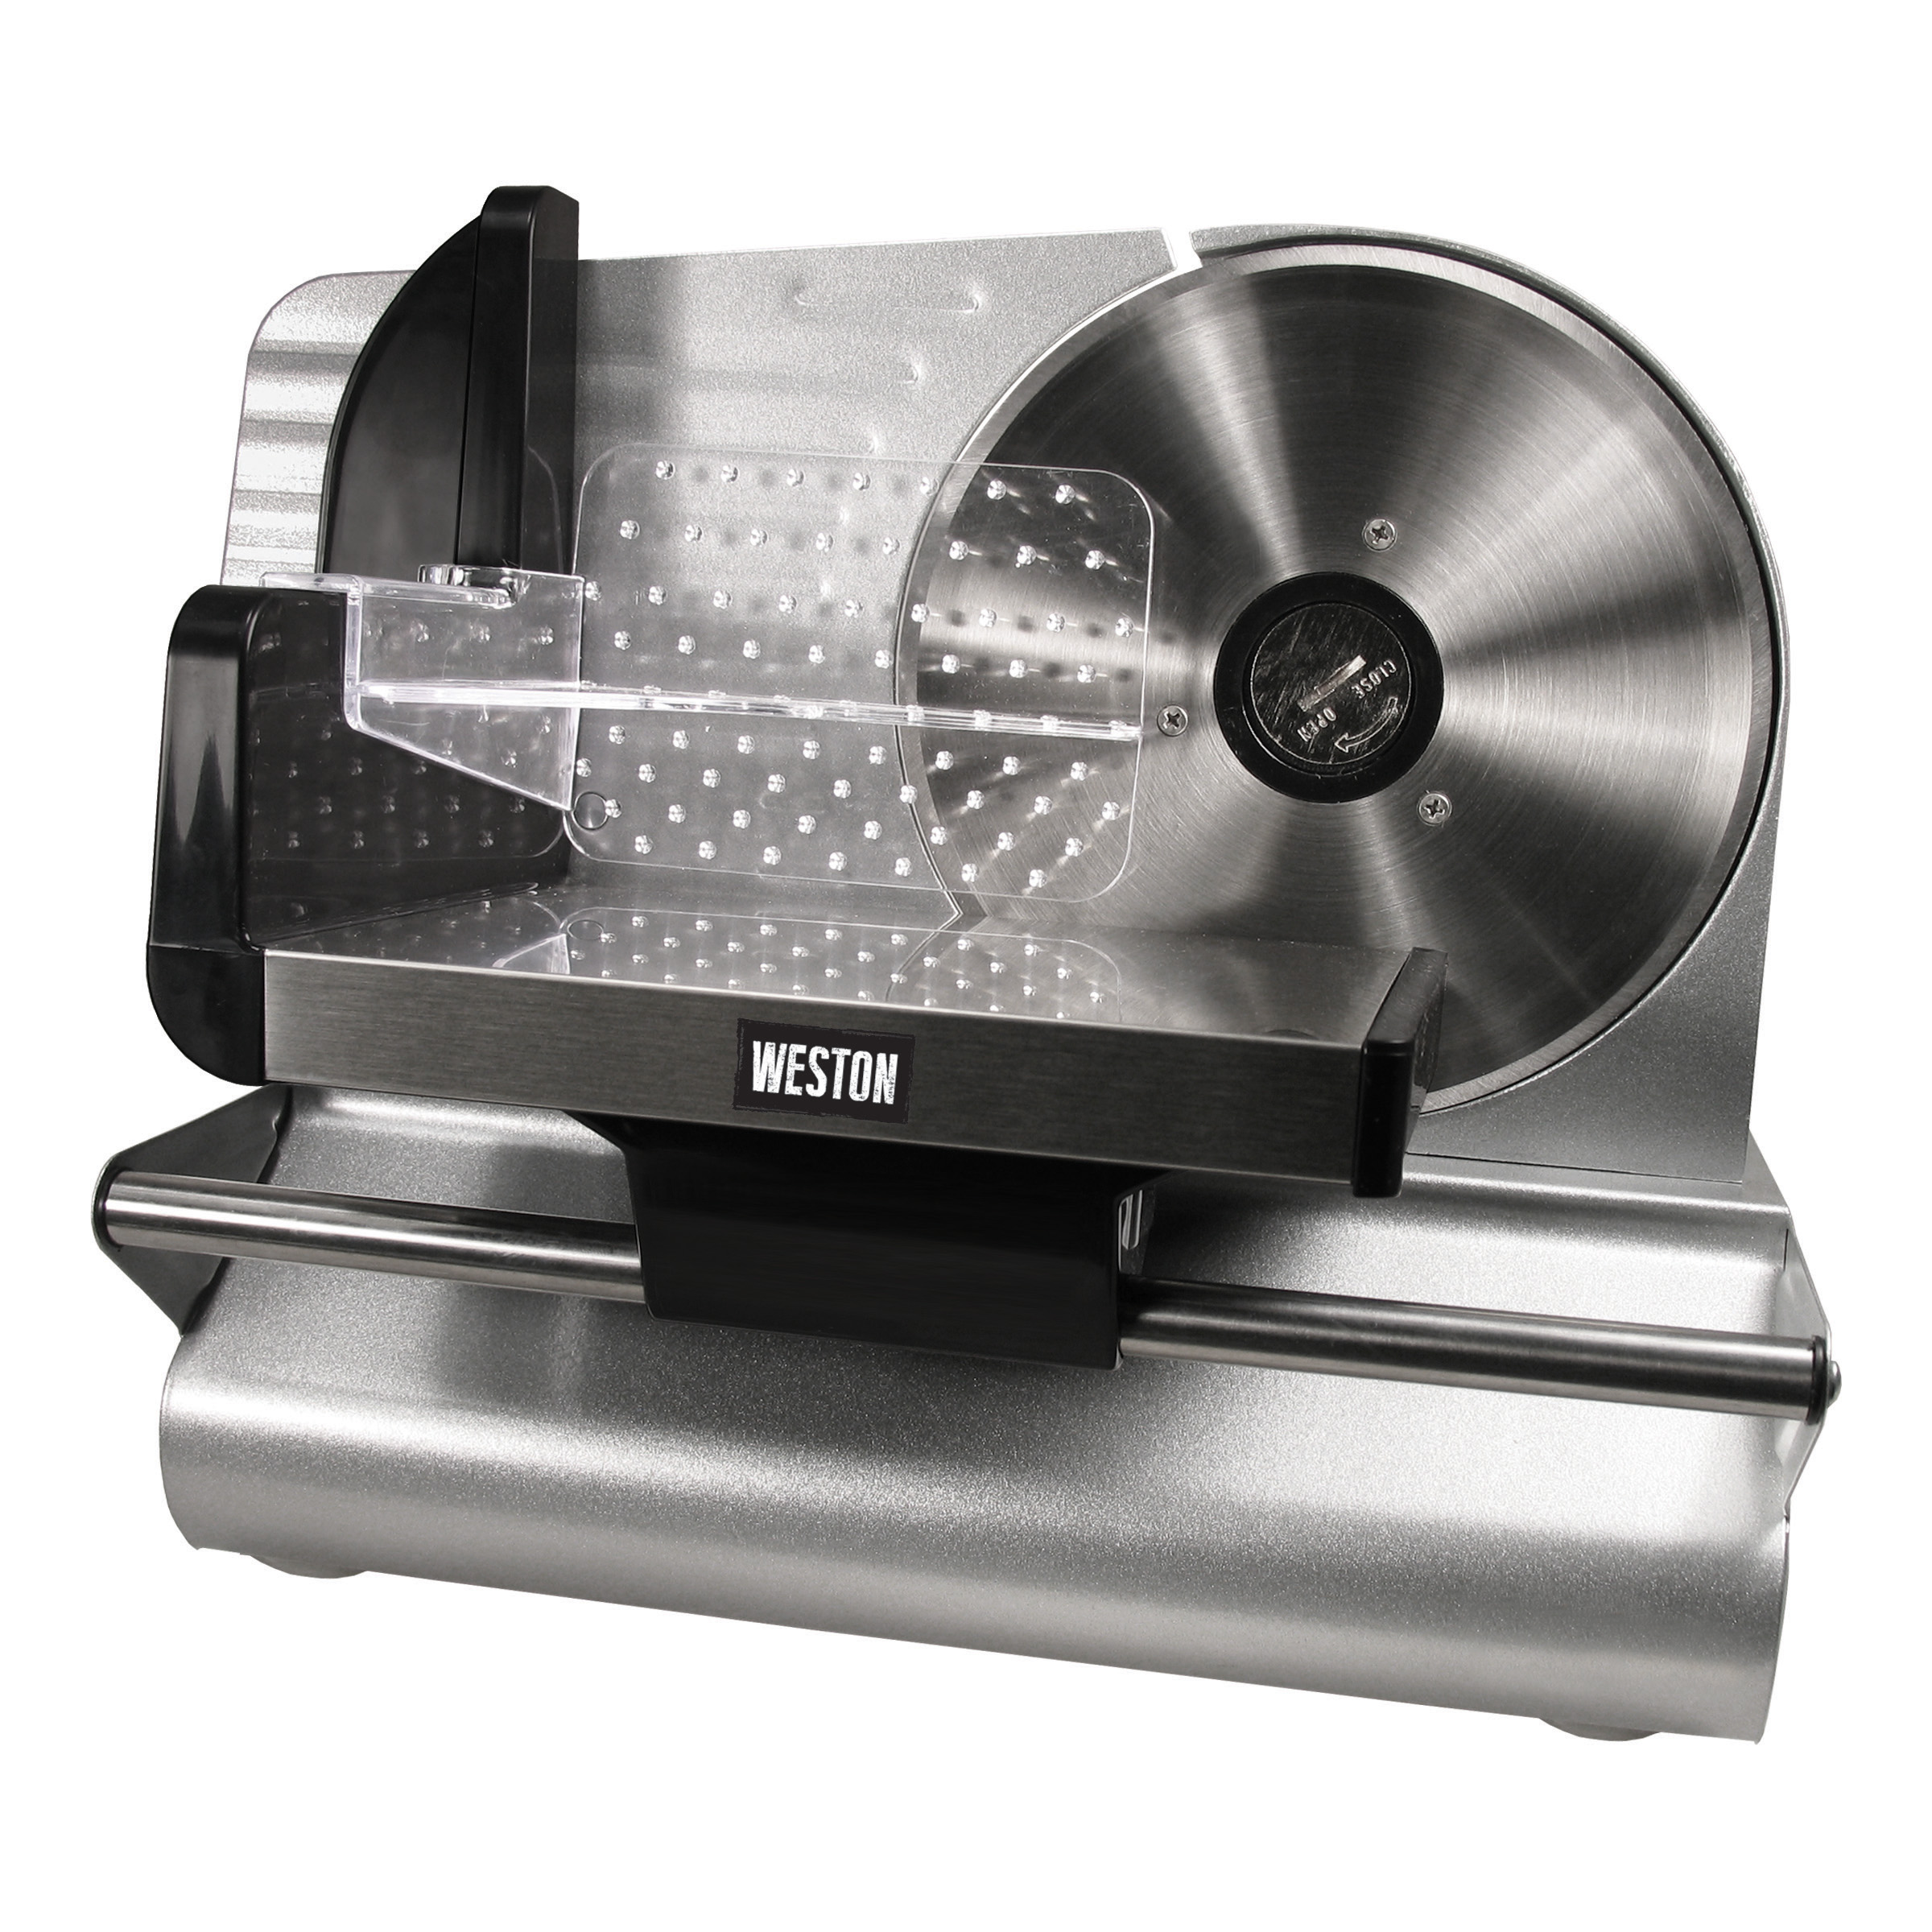 "Weston 7 1/2"" Meat Slicer"